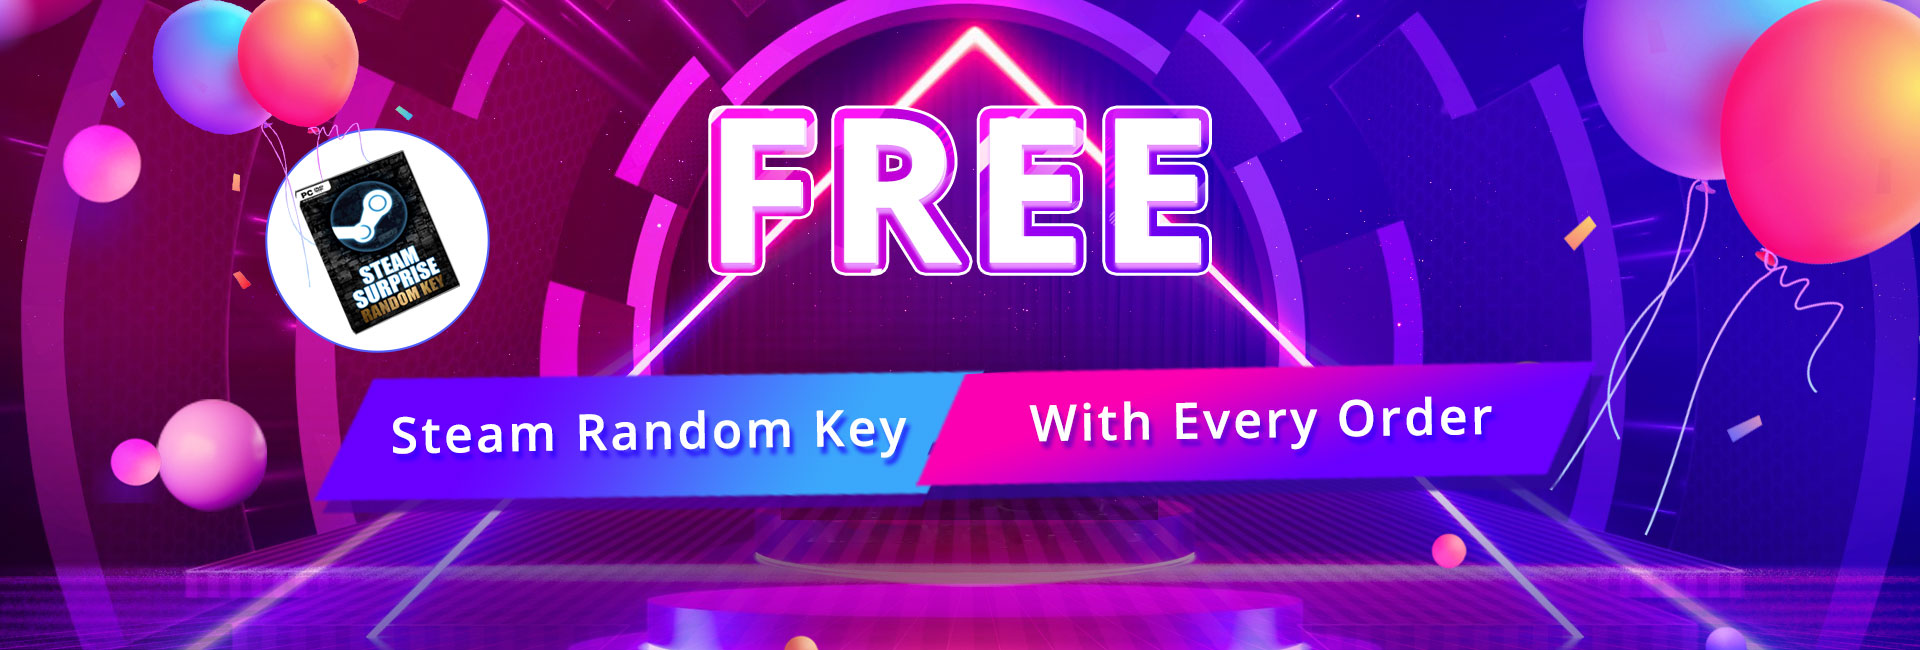 Free Steam Random Key with Every Order